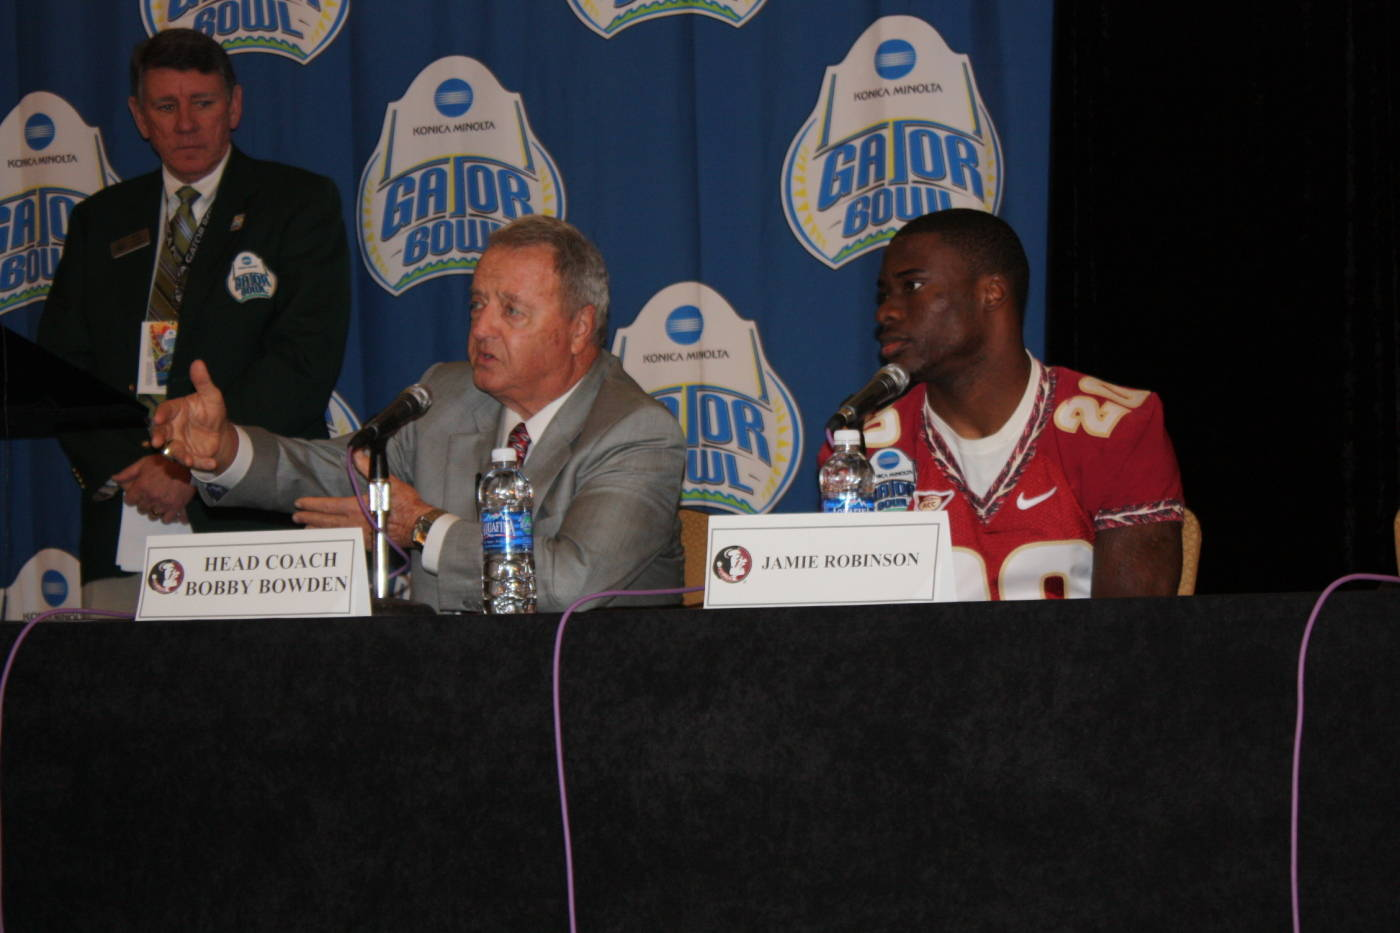 FSU head coach Bobby Bowden and Jamie Robinson at the Gator Bowl coaches and players press conference at the Hyatt in Jacksonville.